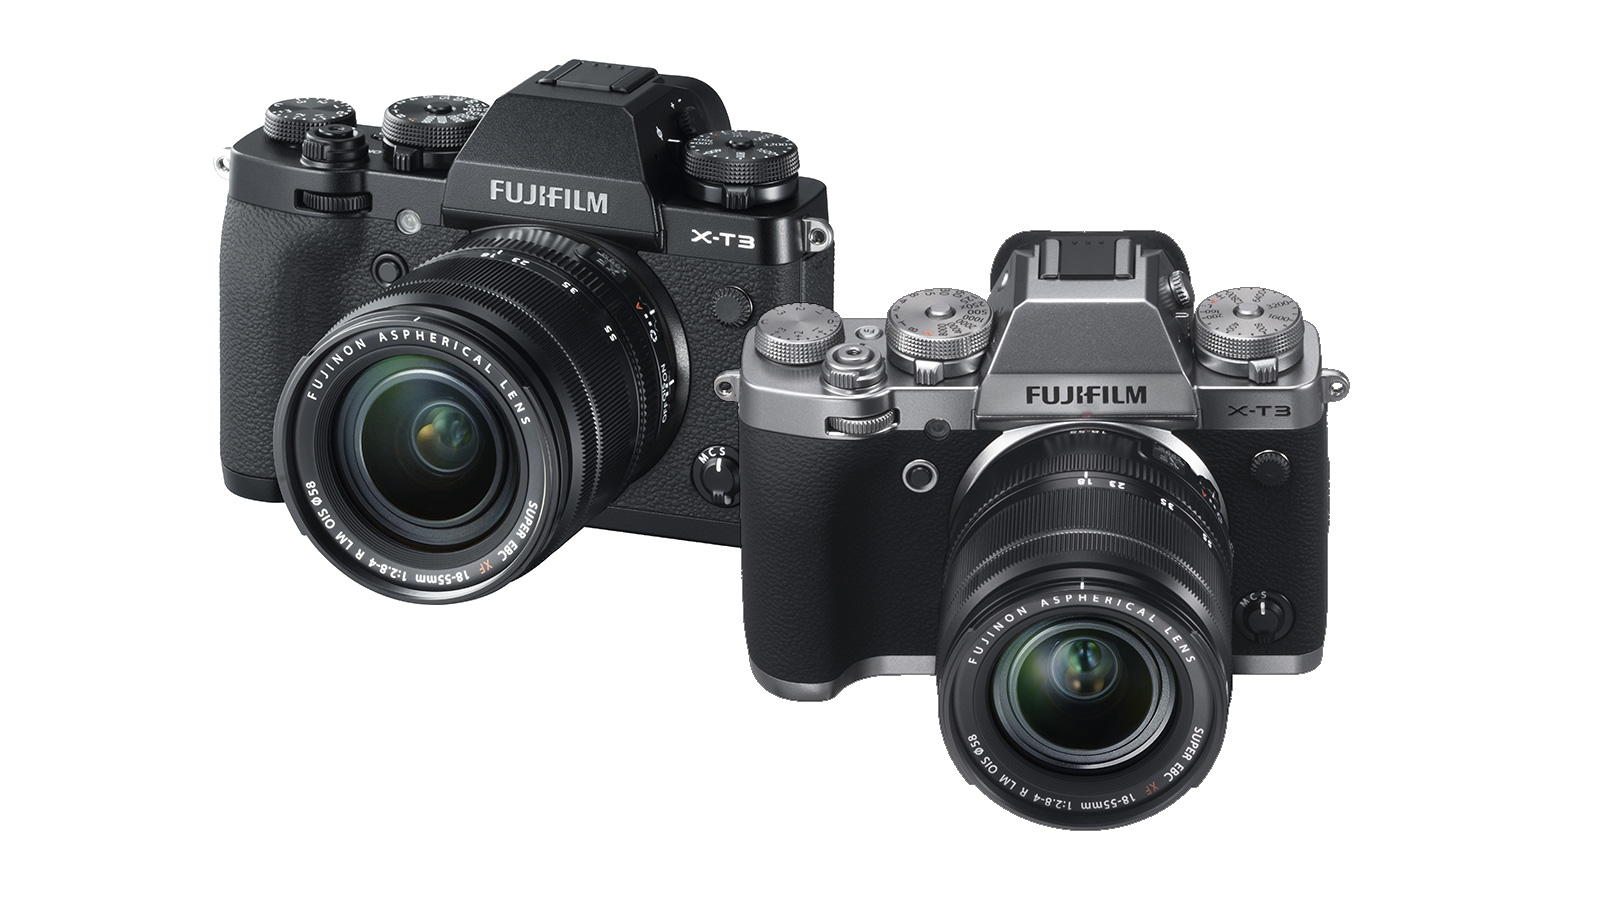 Fujifilm Announces X-T3 with 26.1MP X-Trans 4 Sensor